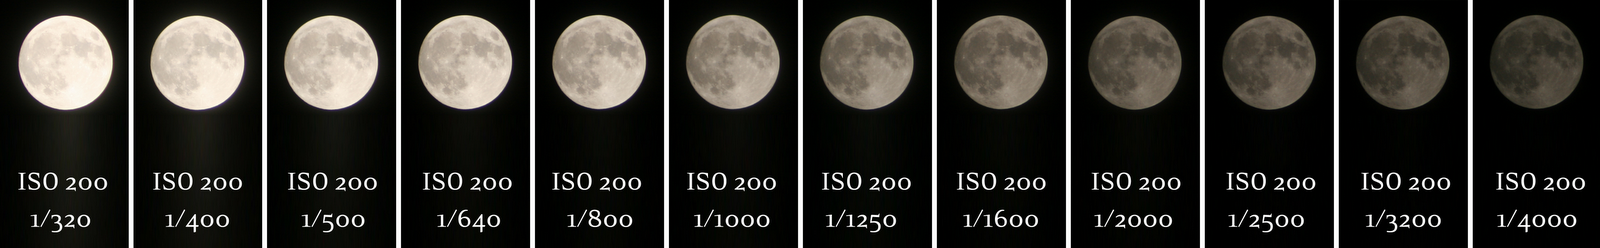 full moon photography exposure chart